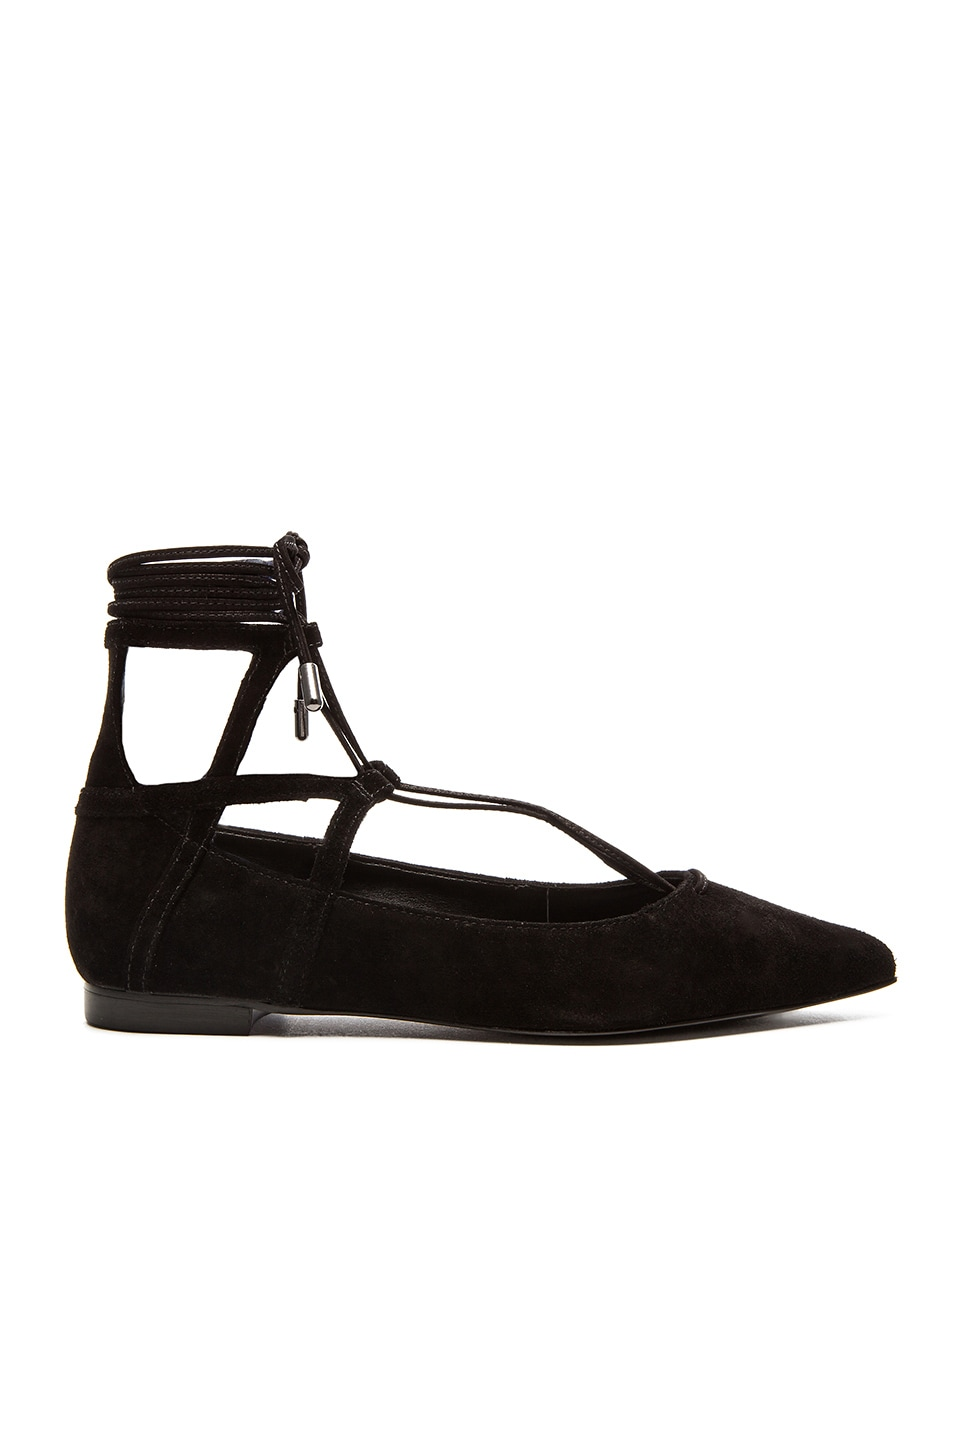 Schutz Beryl Flat in Black